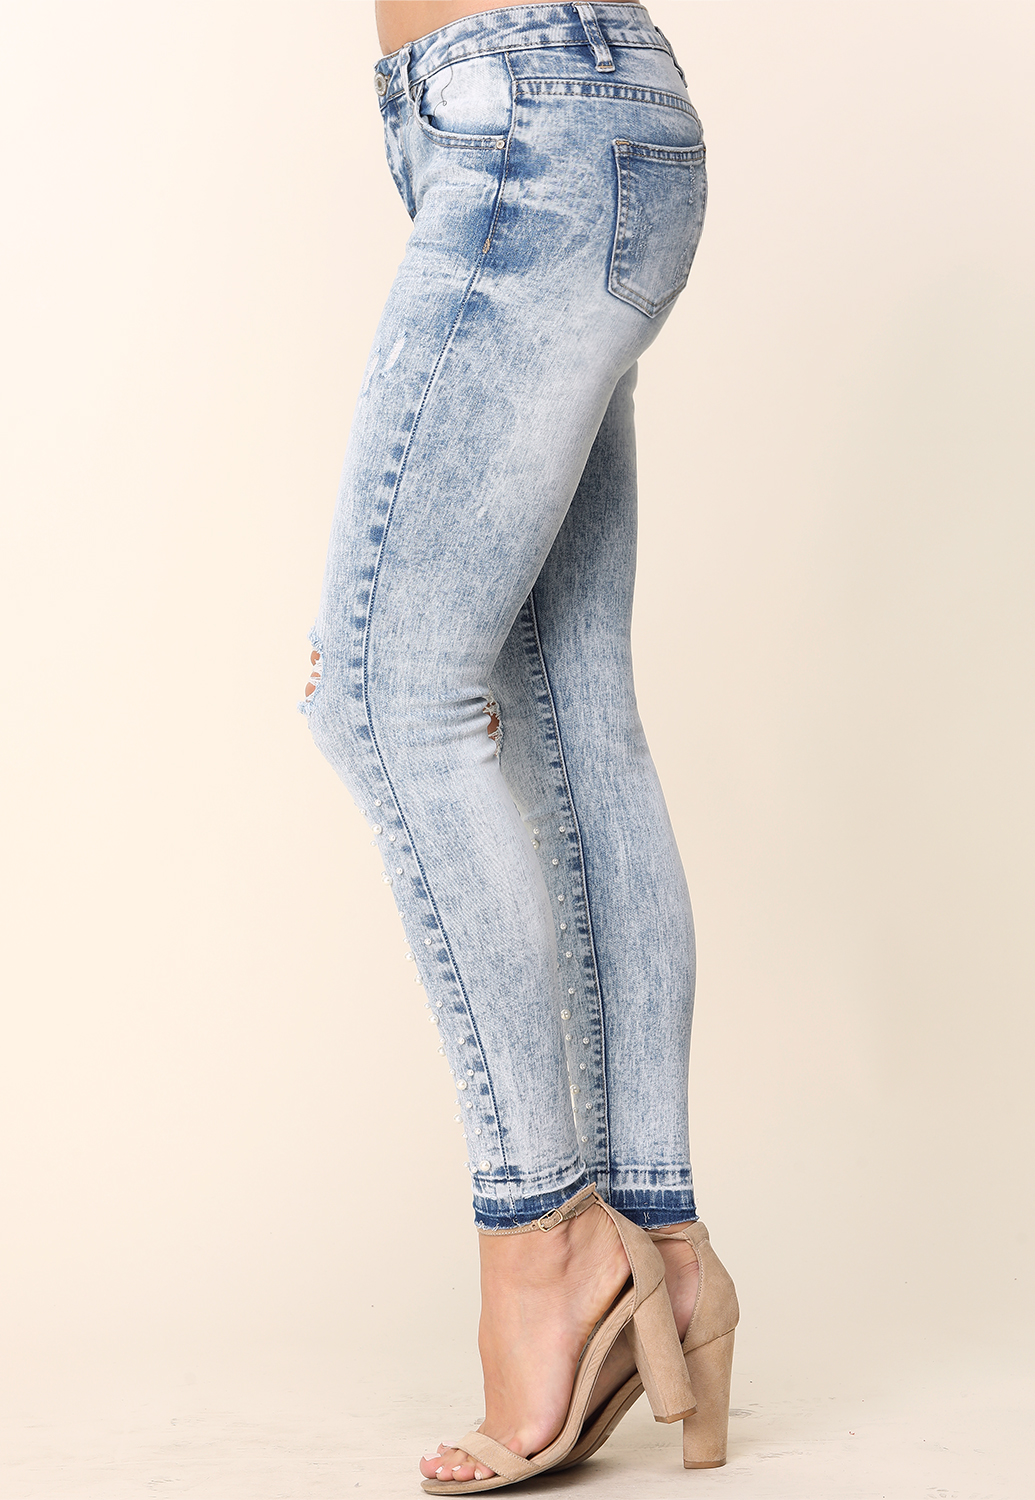 Faux Pearl Embellished Distressed Skinnyjeans